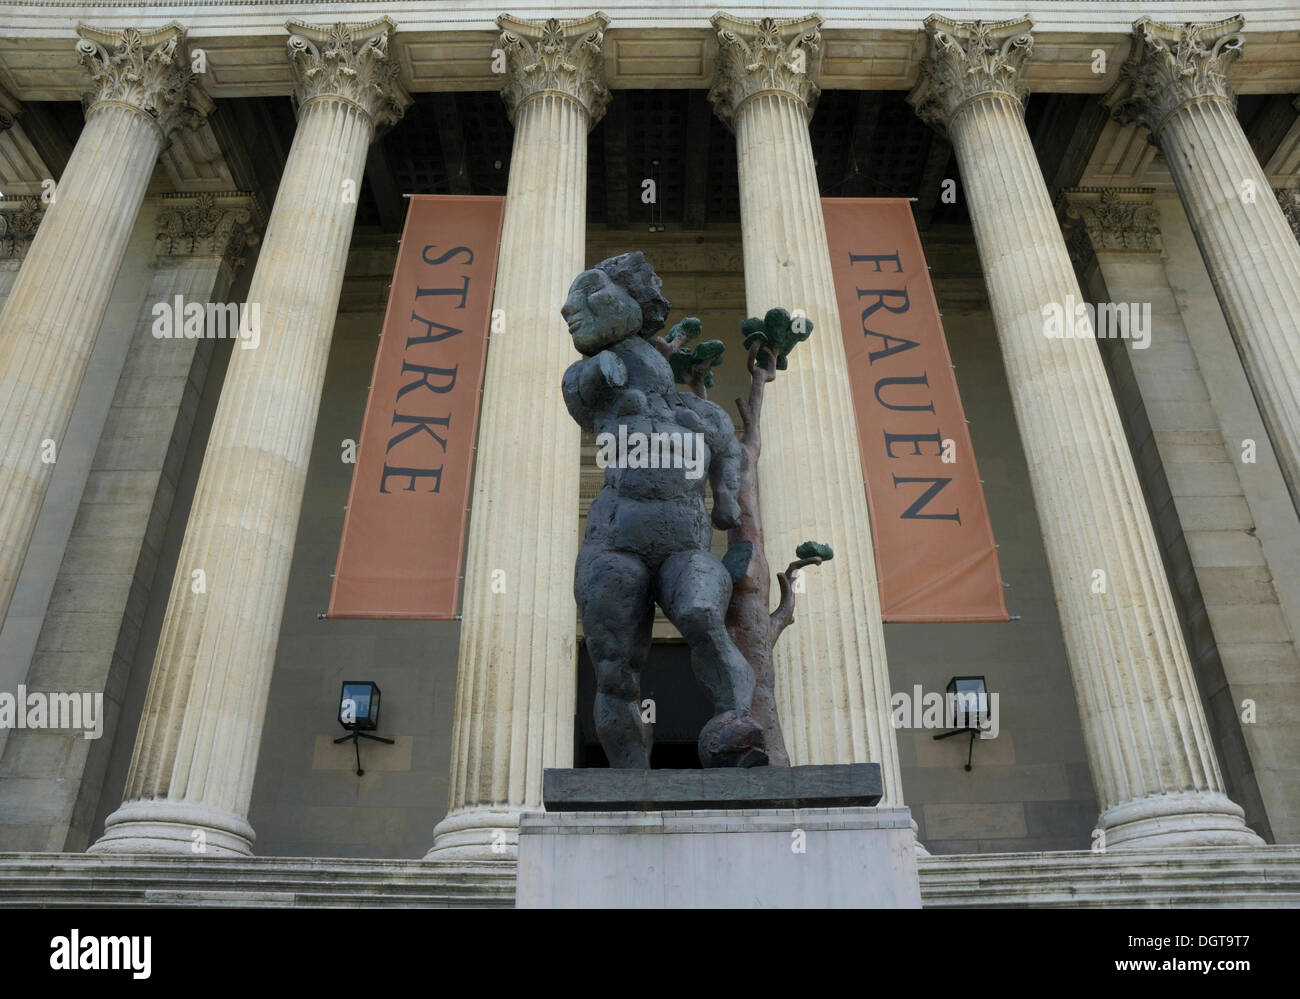 State collections of antiquities, Munich, Bavaria - Stock Image